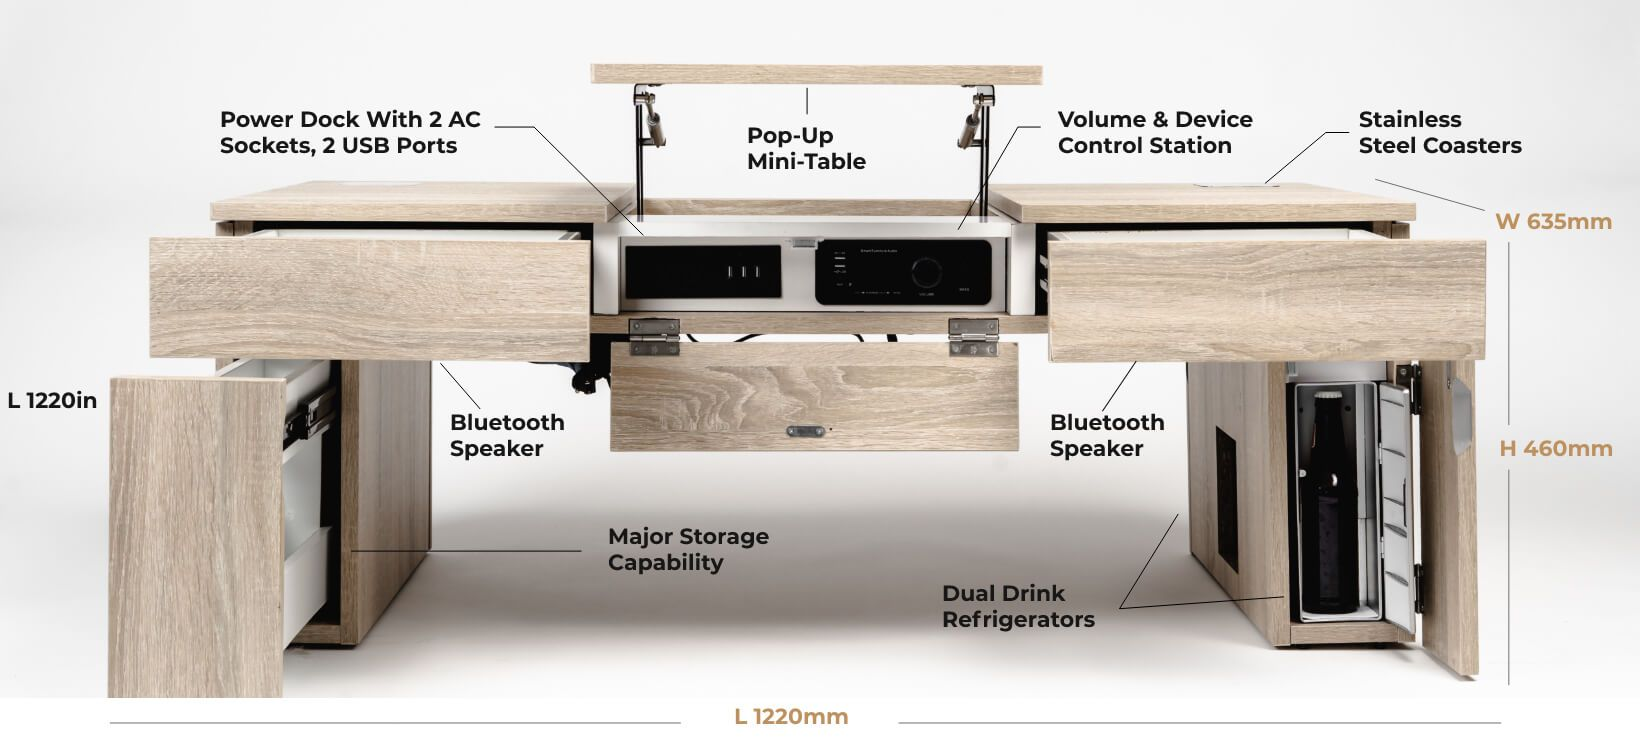 Be The First To Know About Awesome Finds On Kickstarter Indiegogo Tom S Interesting Finds Cool Coffee Tables Coffee Table Coffee Table With Fridge [ 748 x 1640 Pixel ]